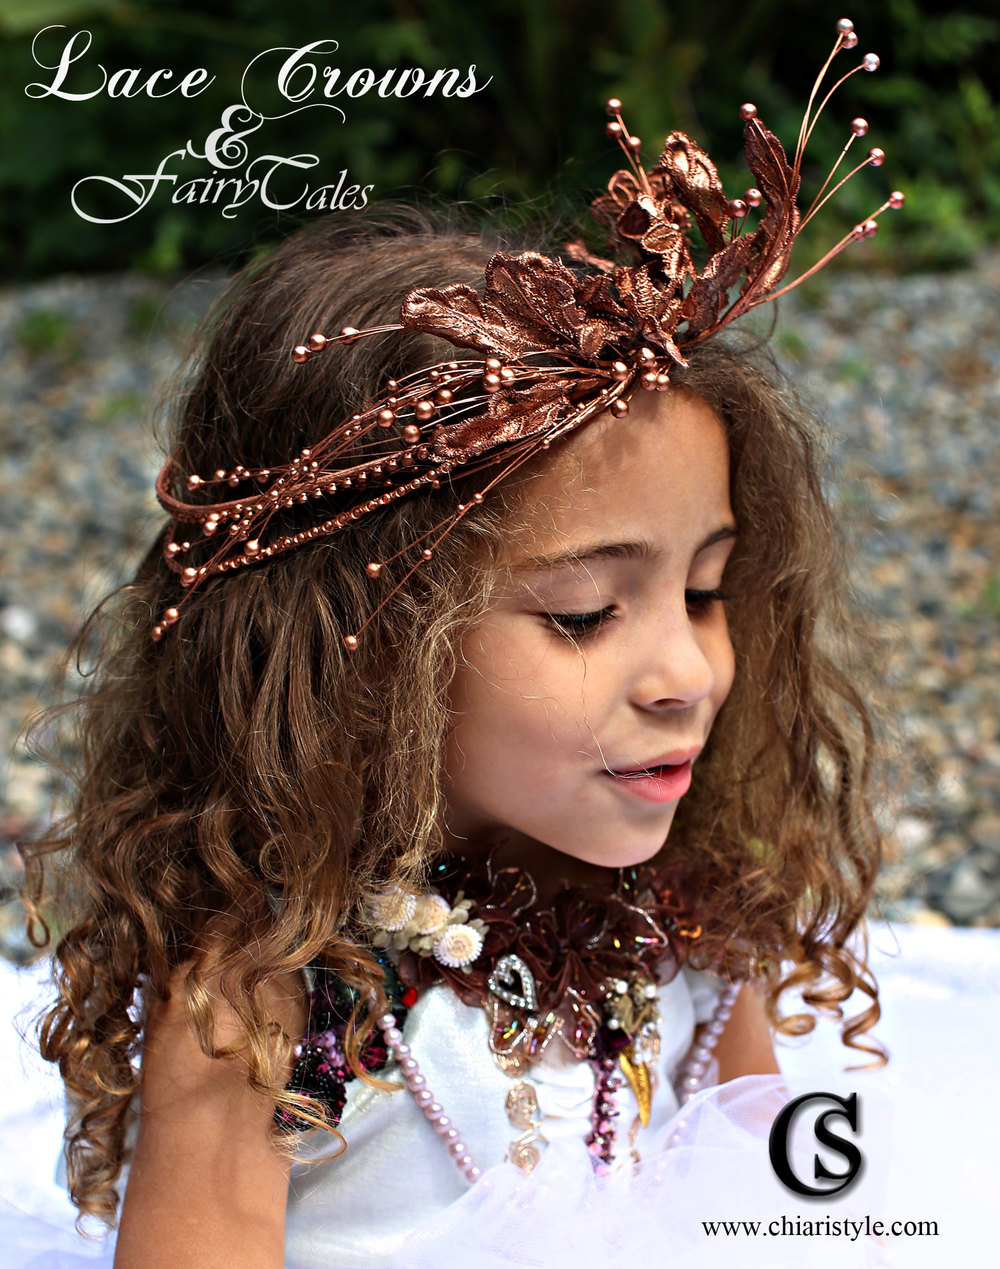 Lace Crowns and Fairy Tales CHIARIstyle